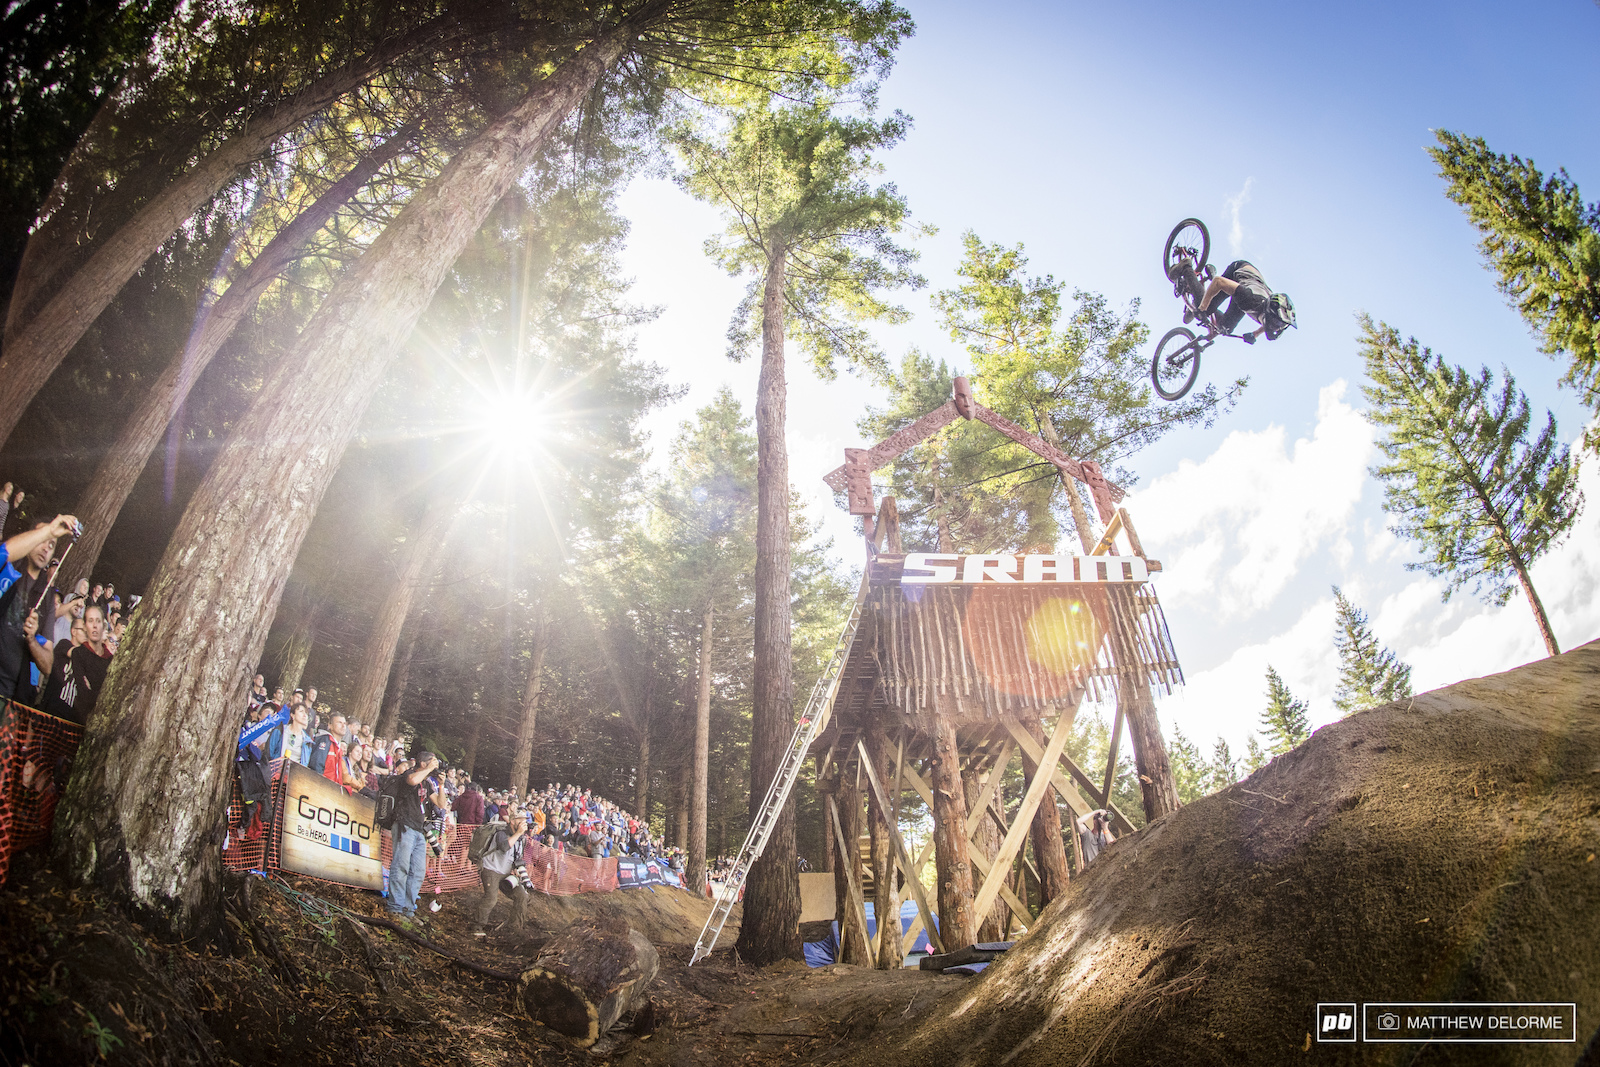 Brett Rheeder took his first win today. After battling a stomach flu he was the one who found the gold at this first Crankworx.